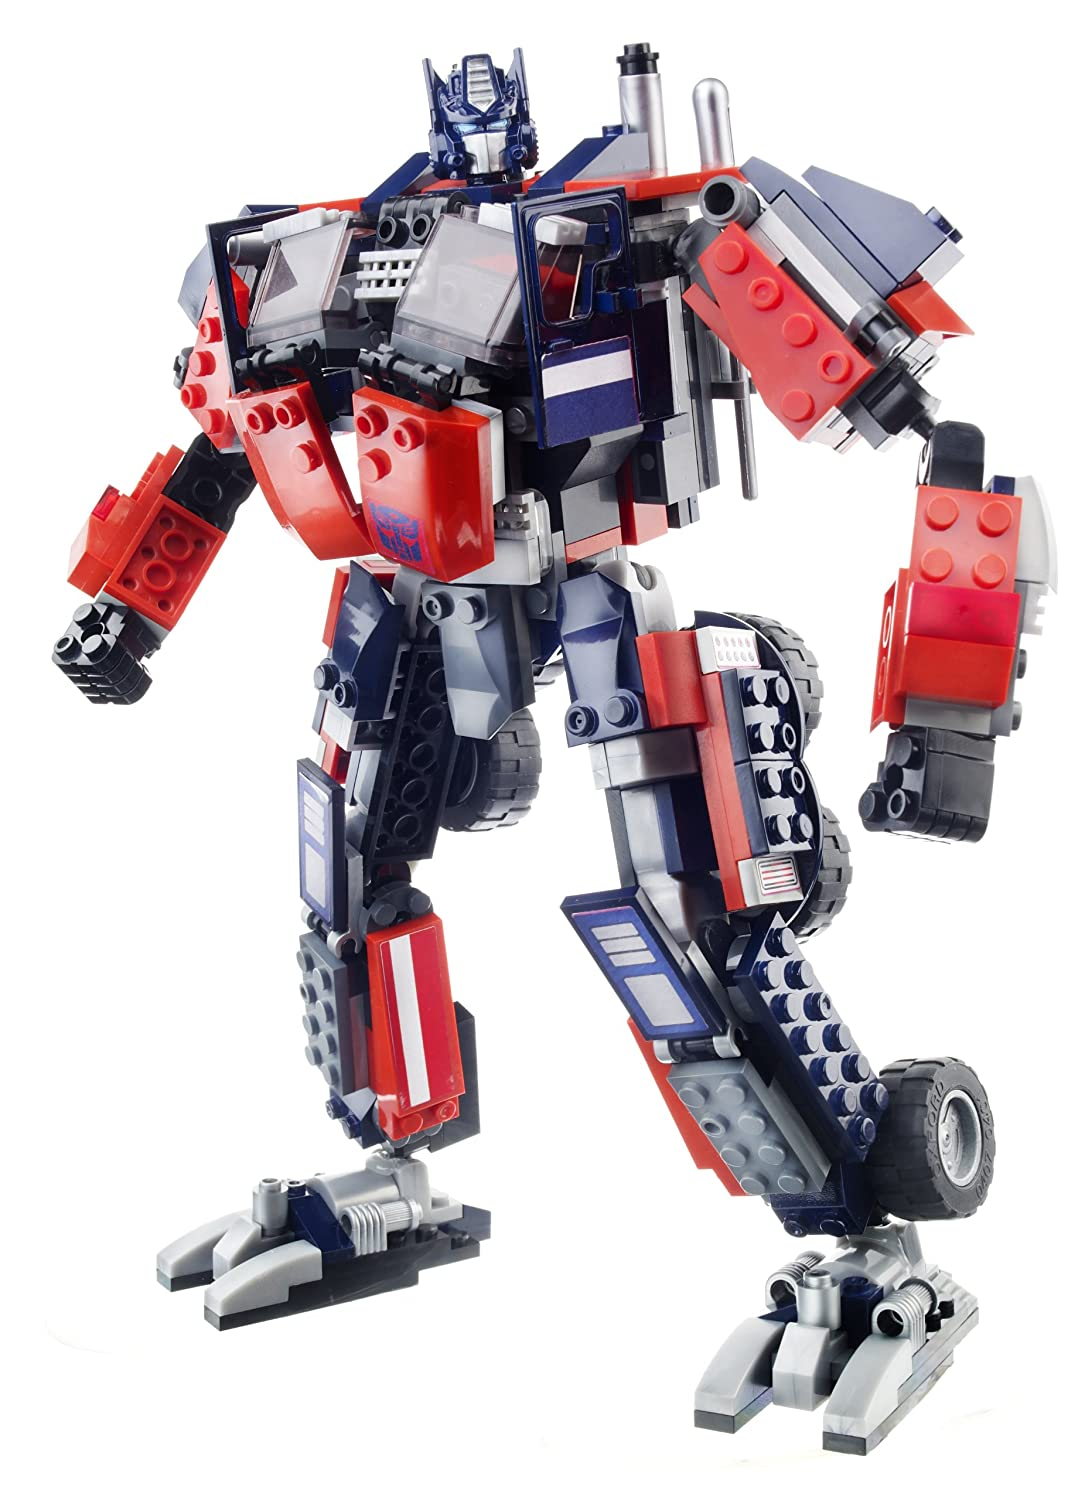 KRE-O Transformers Optimus mit Trailer günstig